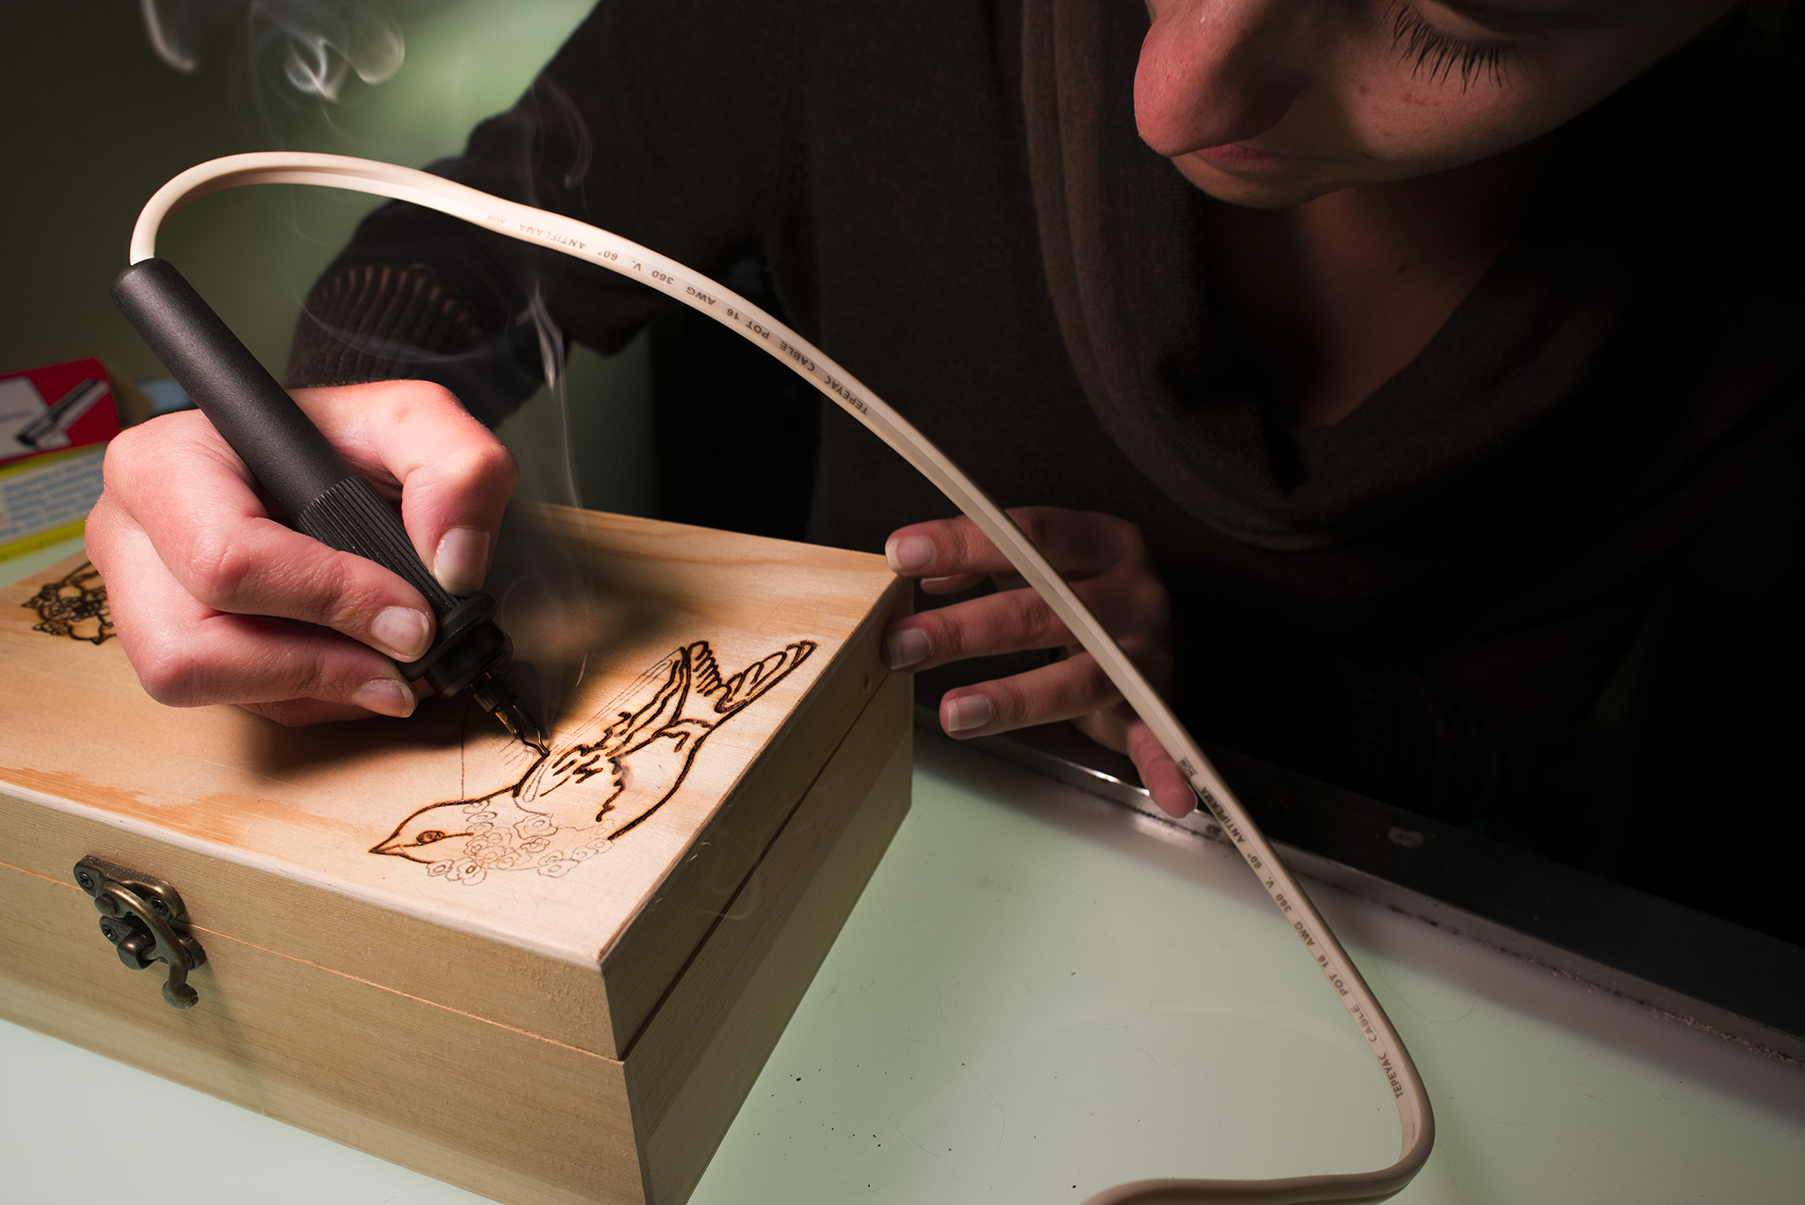 Julie Macala burning designs into wood, an art form known as pyrography | Columbus, Ohio